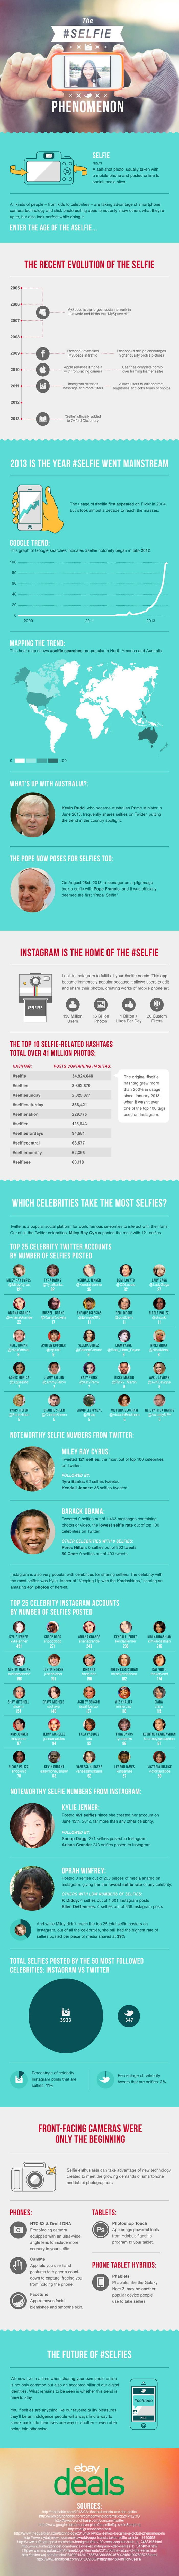 The #selfie Phenomenon (infographic)